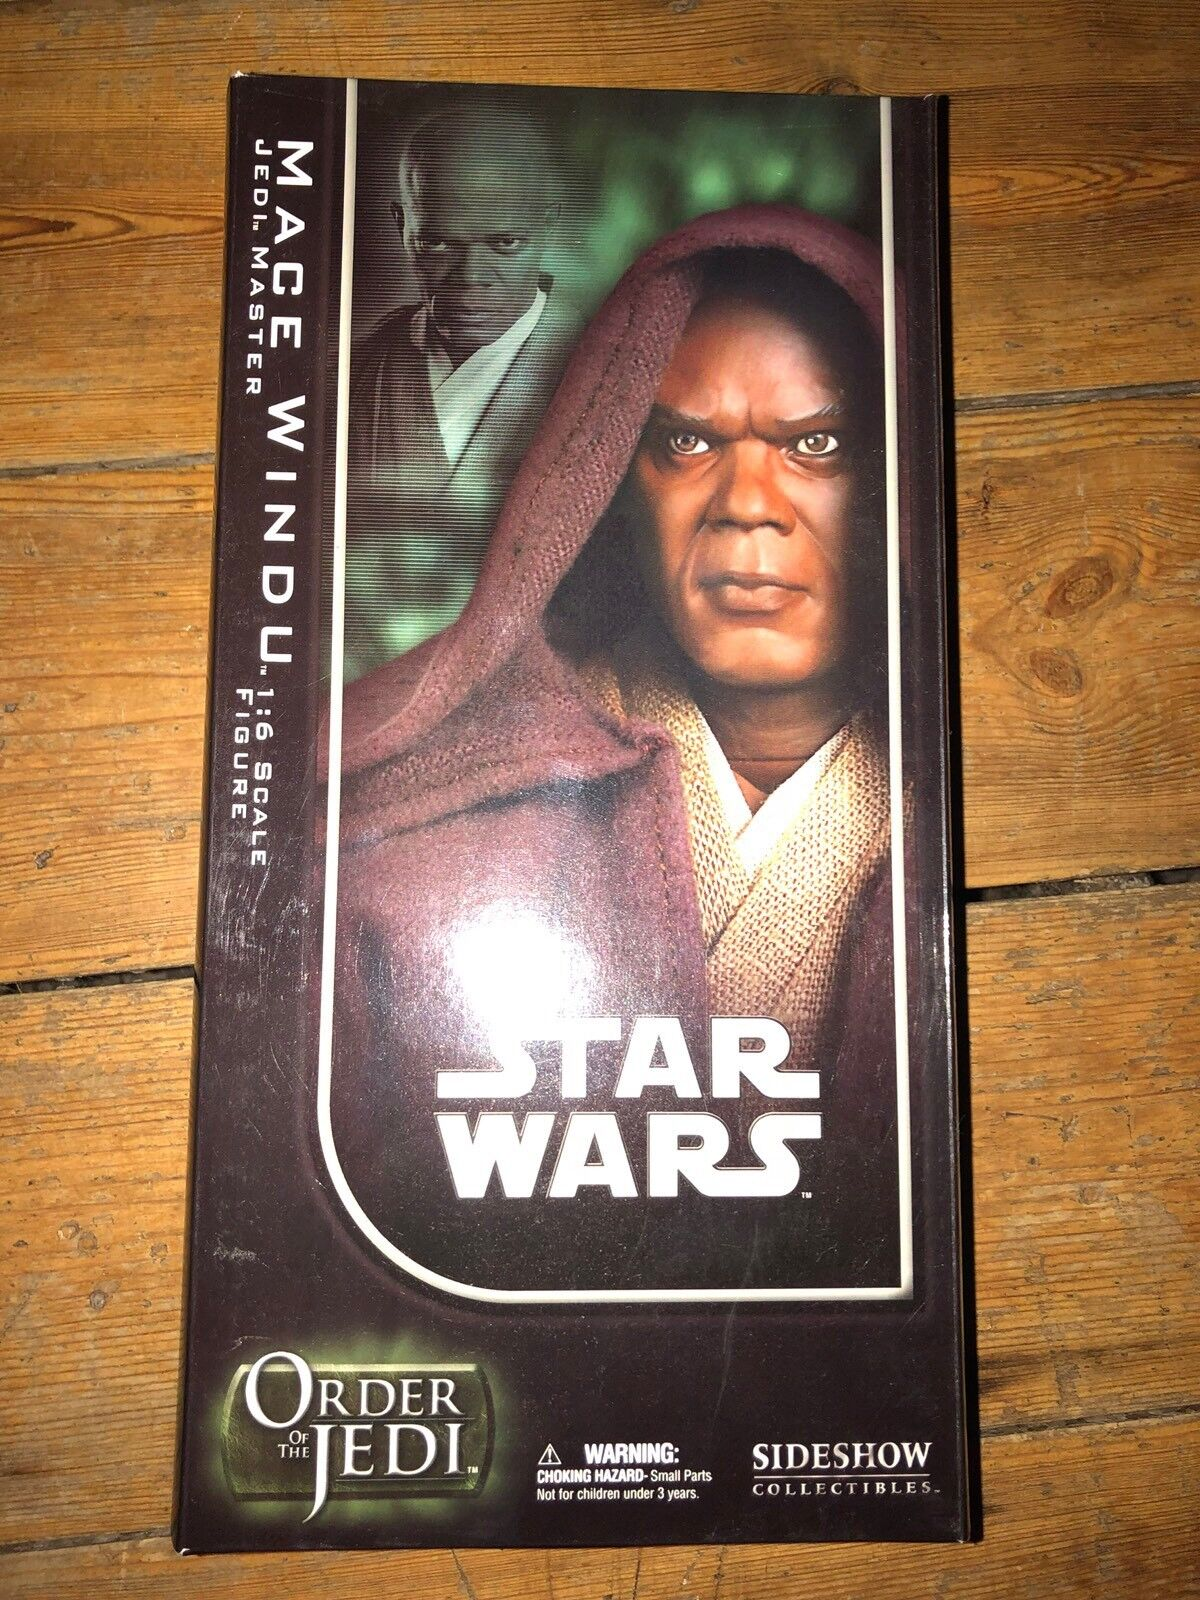 Sideshow Star Wars Order Of The Jedi Mace Windu Jedi Master AFSSC522